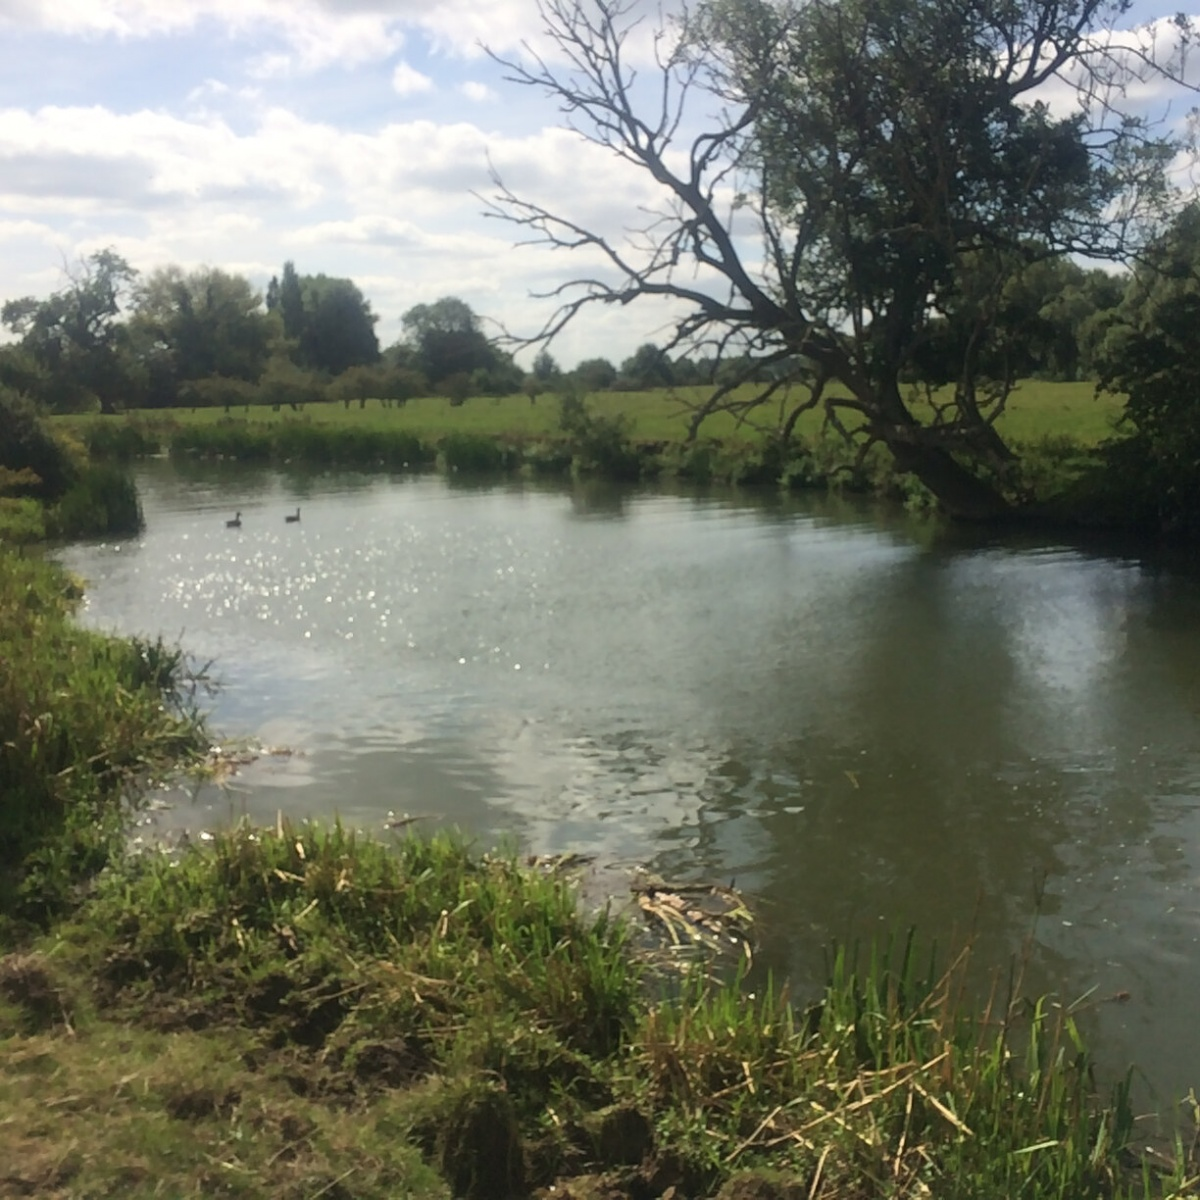 From Crickdale to Lechlade